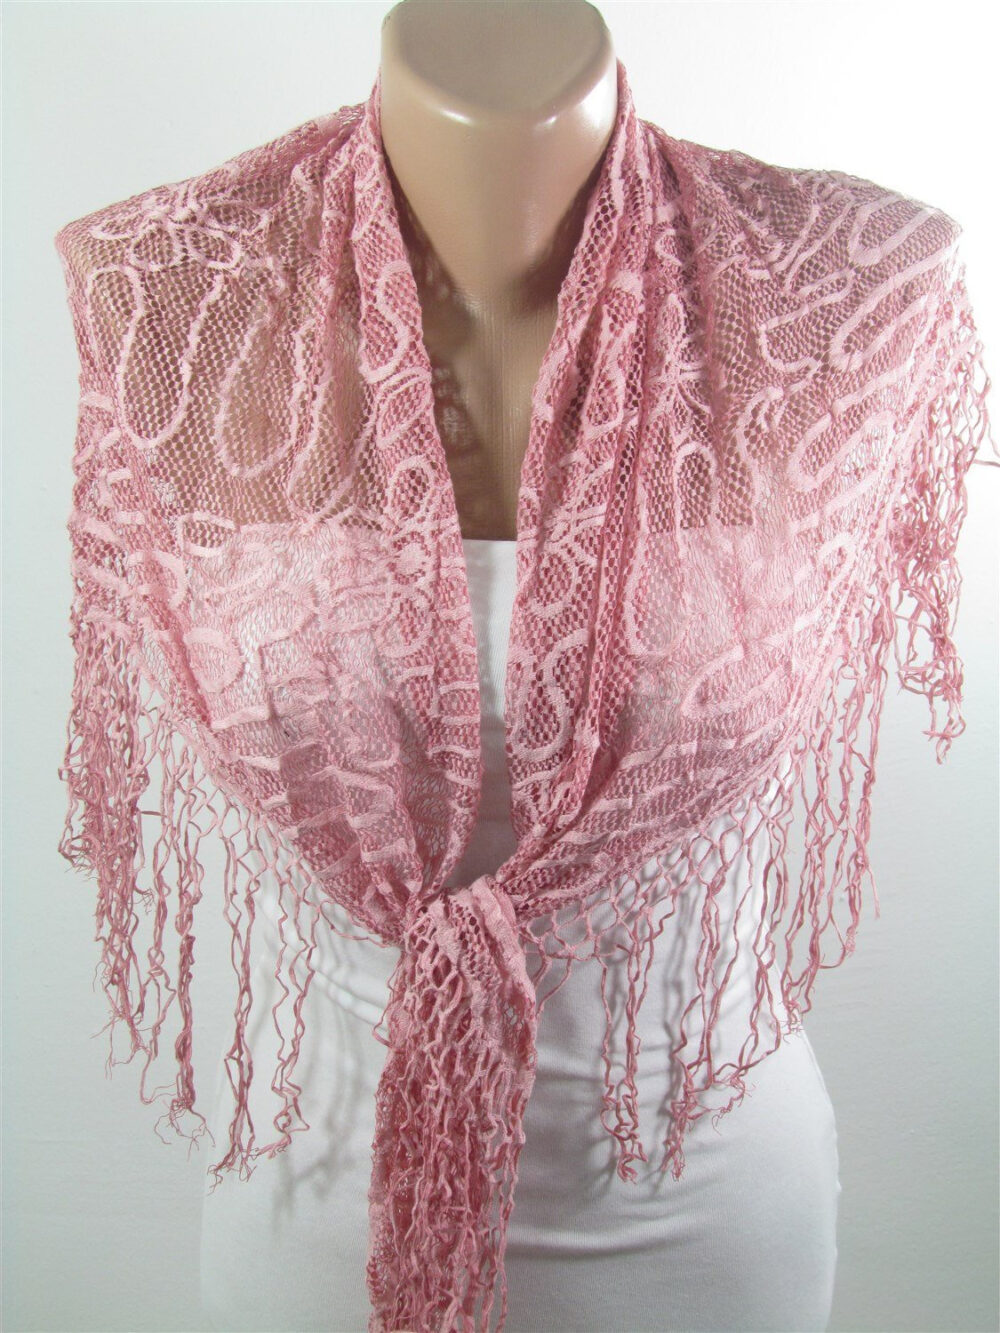 Pink Bridal Scarf Lace Shawl Wedding Wrap For Bridesmaids Gifts - Accessories Women Unique Gift For Women